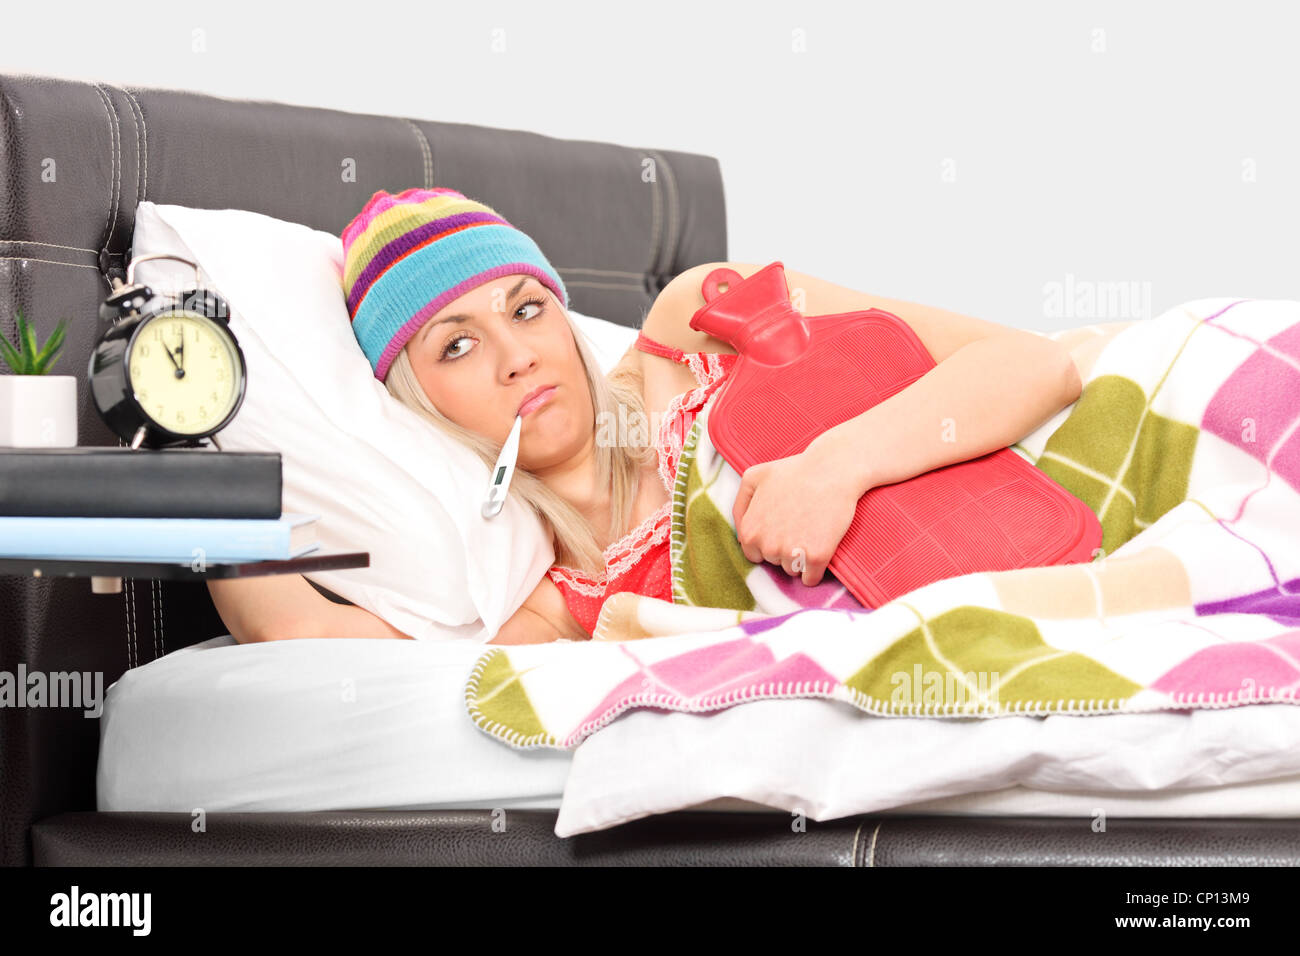 Ill woman in a bed holding a hot-water bottle and a thermometer in her mouth - Stock Image